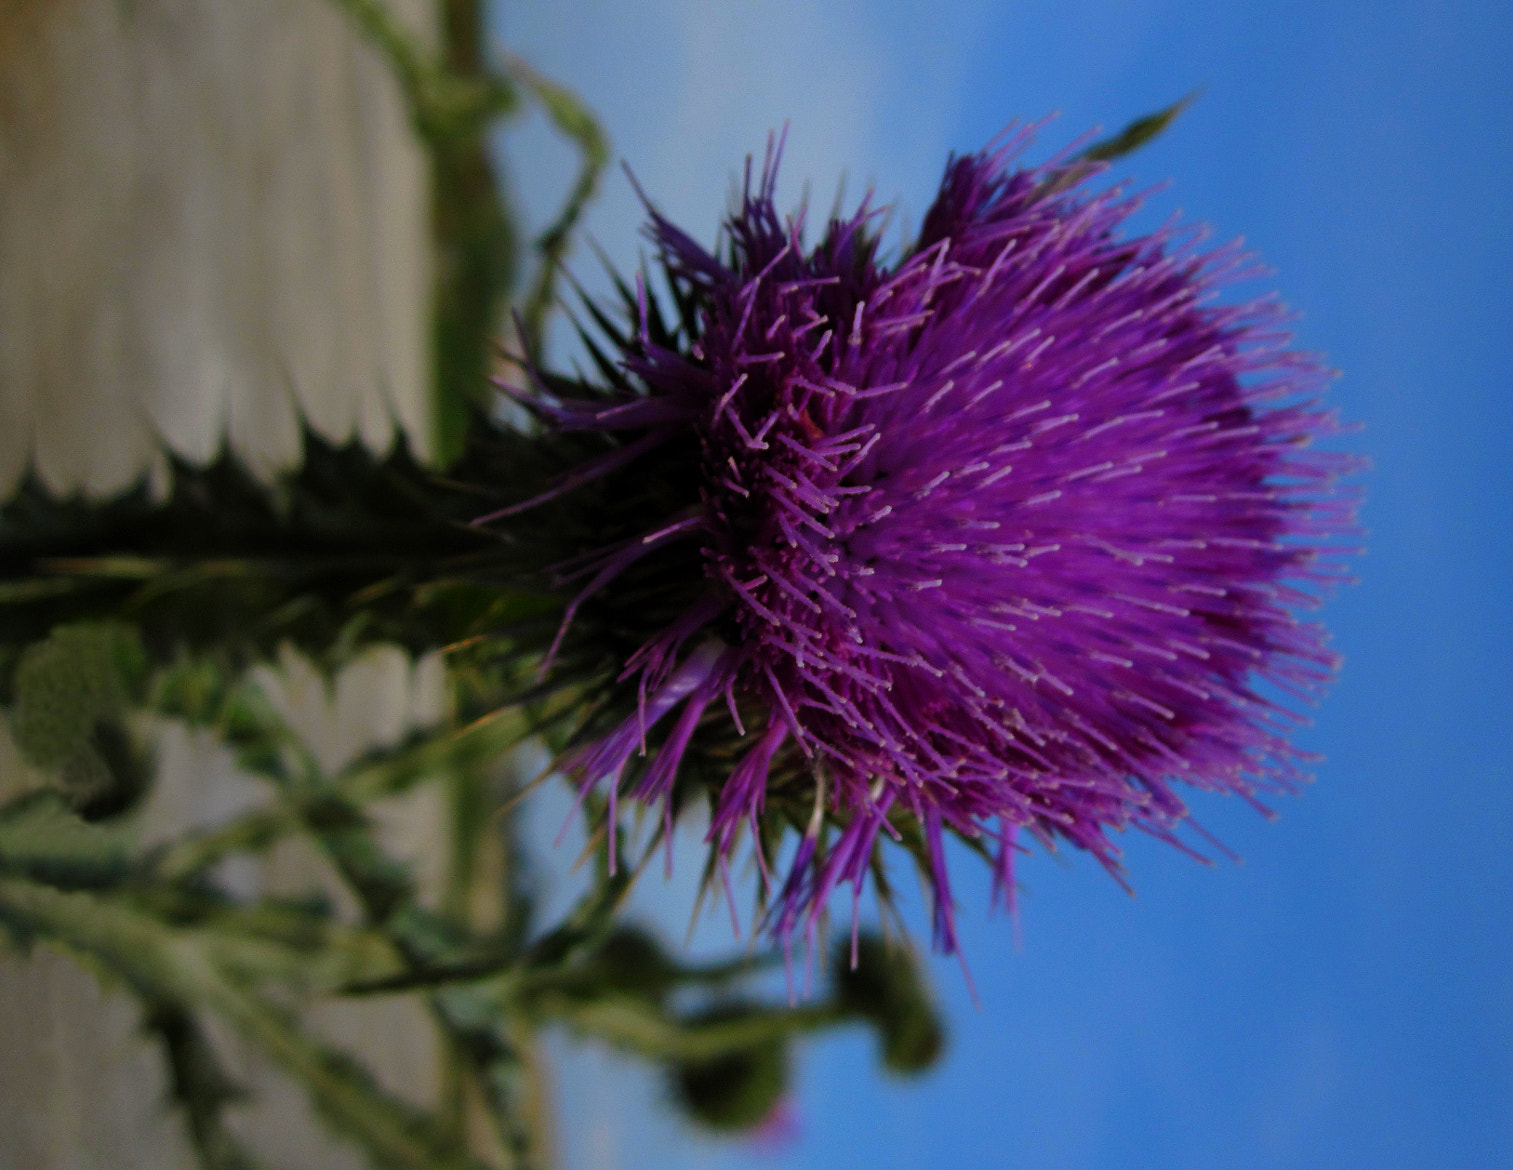 Photograph Thistle by ÁngelDeGuardia * on 500px